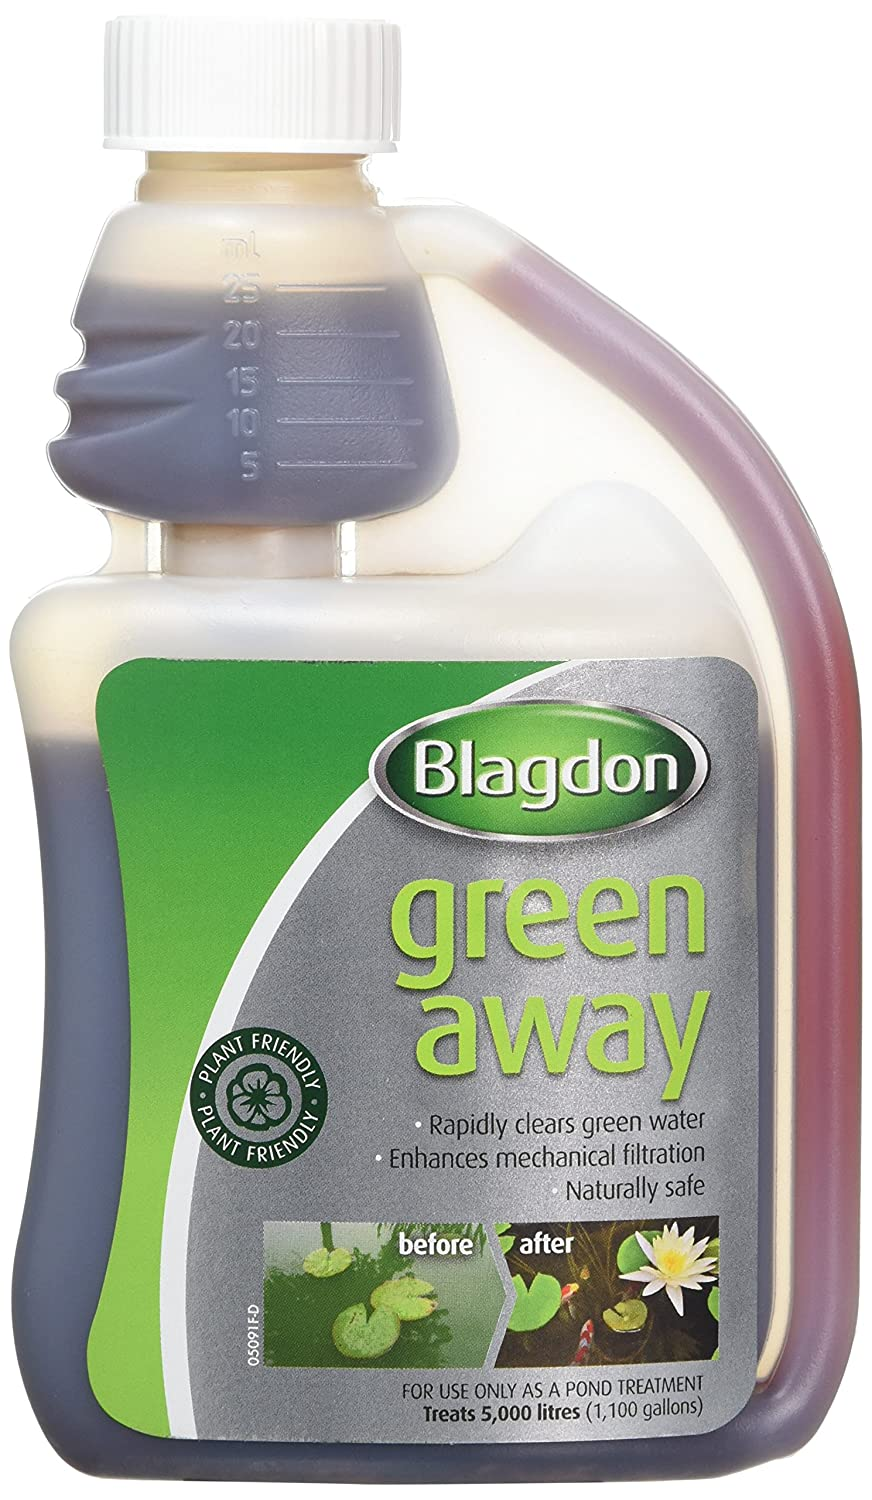 Blagdon 1L Green Away for Ponds Interpet Ltd 2674